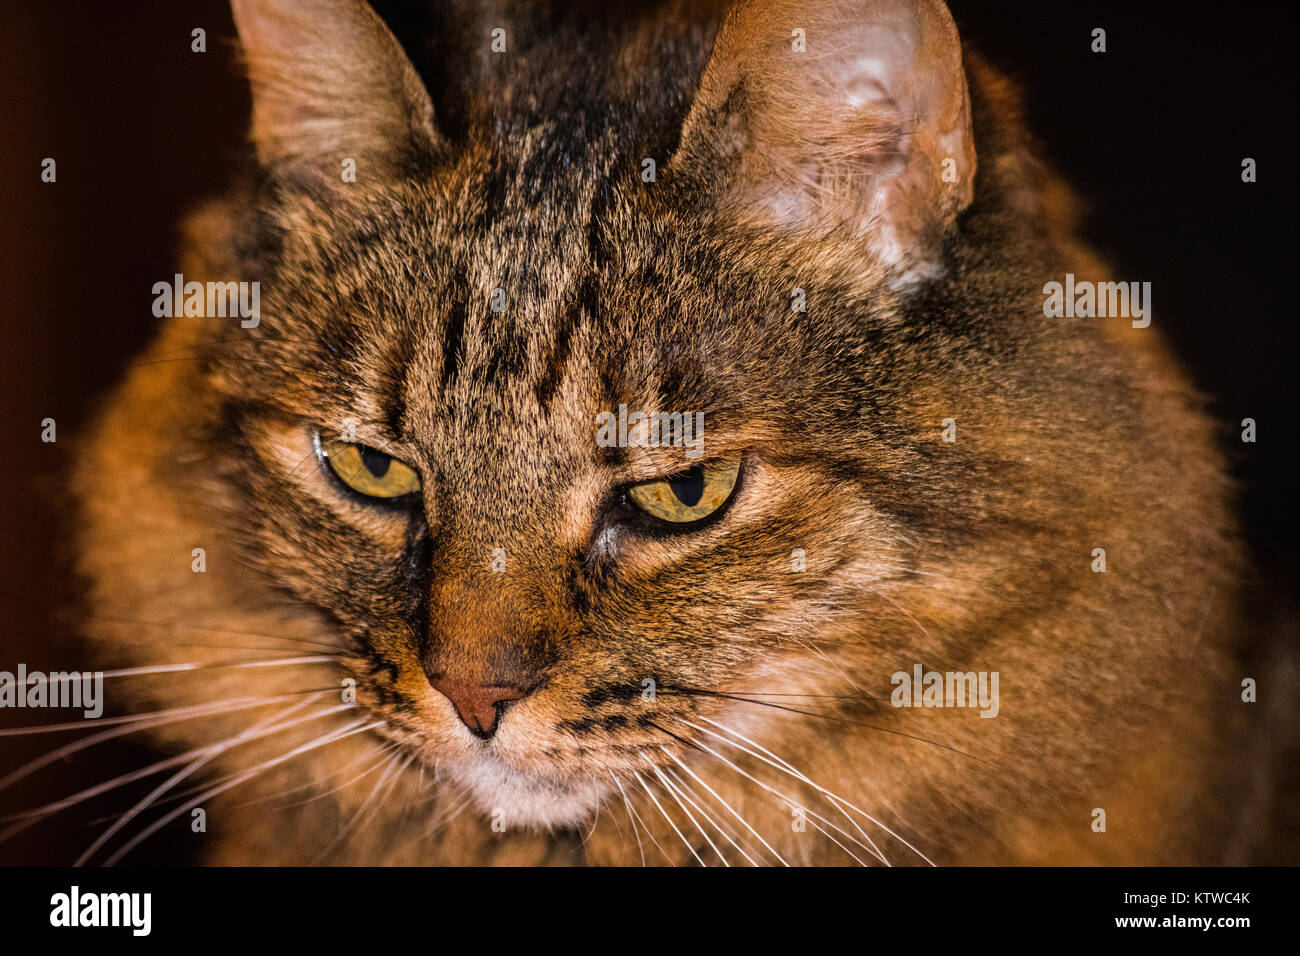 Nordic cat with long hair and a very intense look - Stock Image